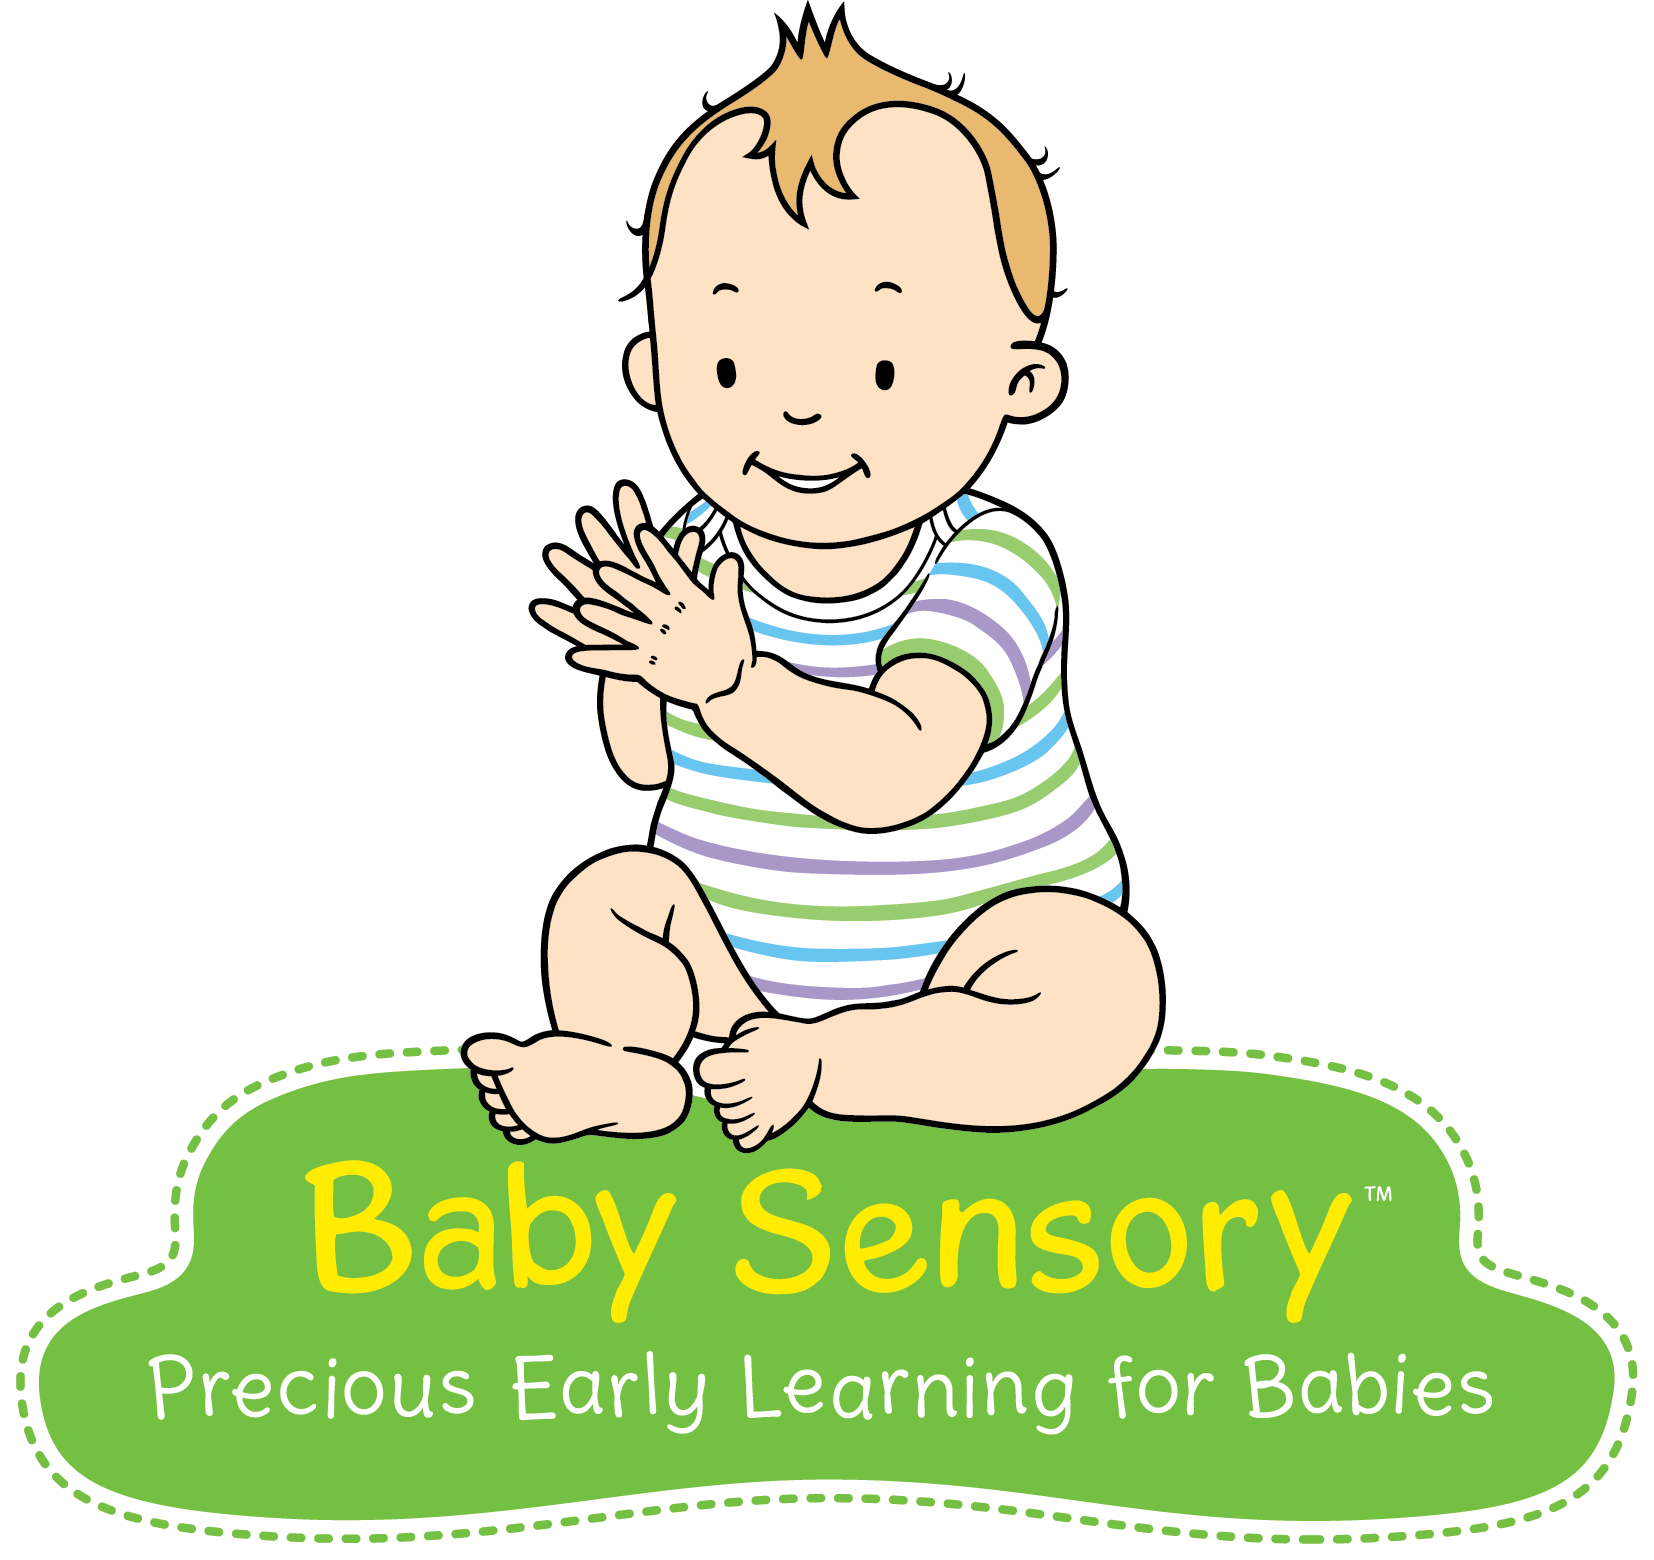 Baby Sensory Wimbledon - Birth to 13 months